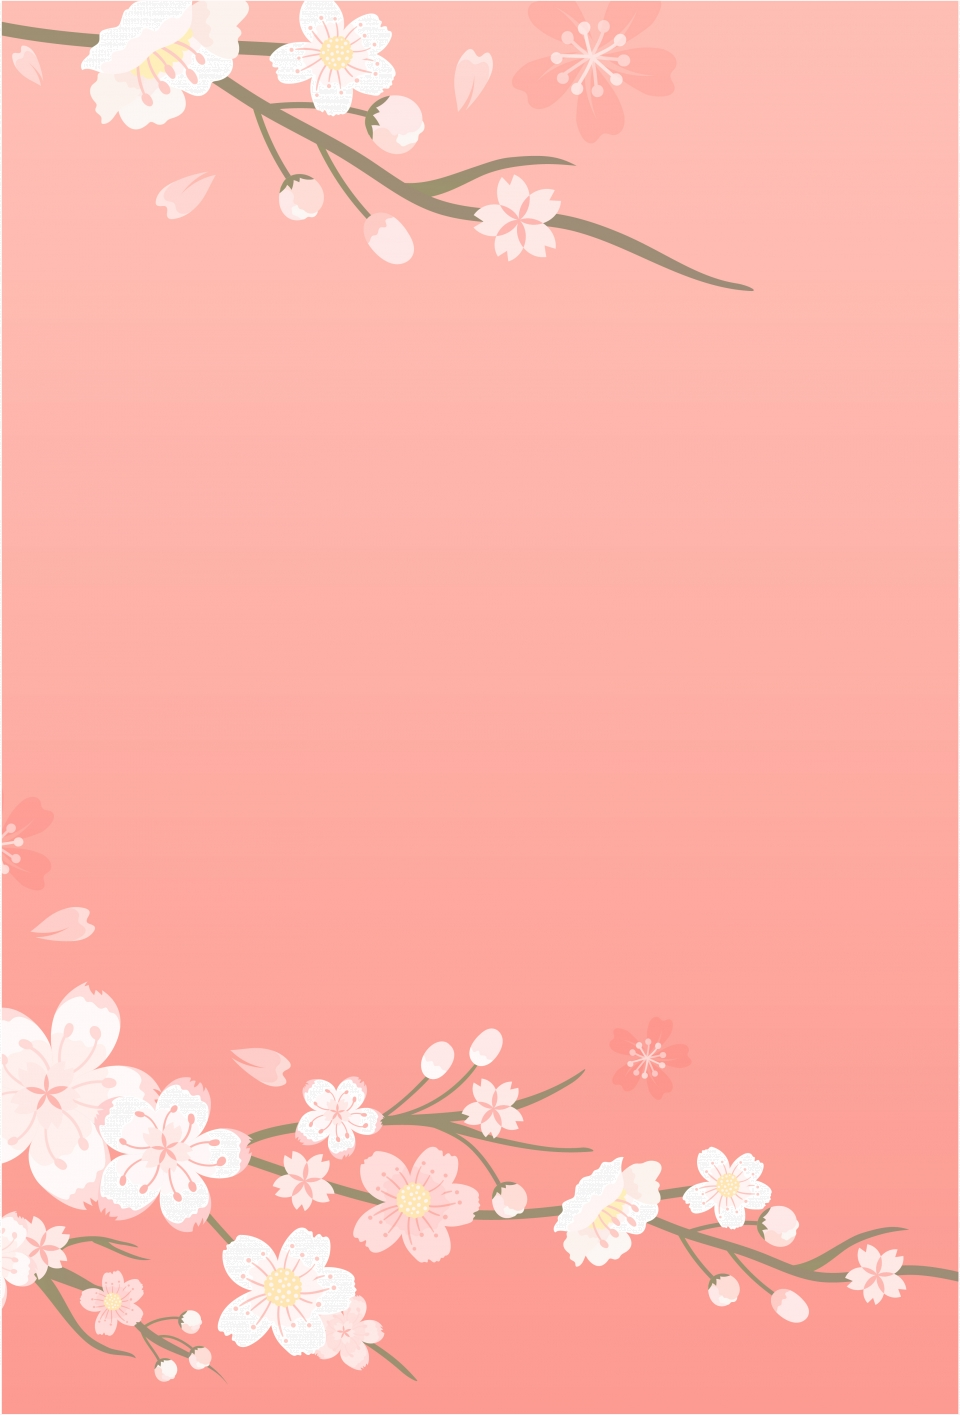 pink peach flower vector background pink peach vector background image for free download https pngtree com freebackground pink peach flower vector background 1119195 html